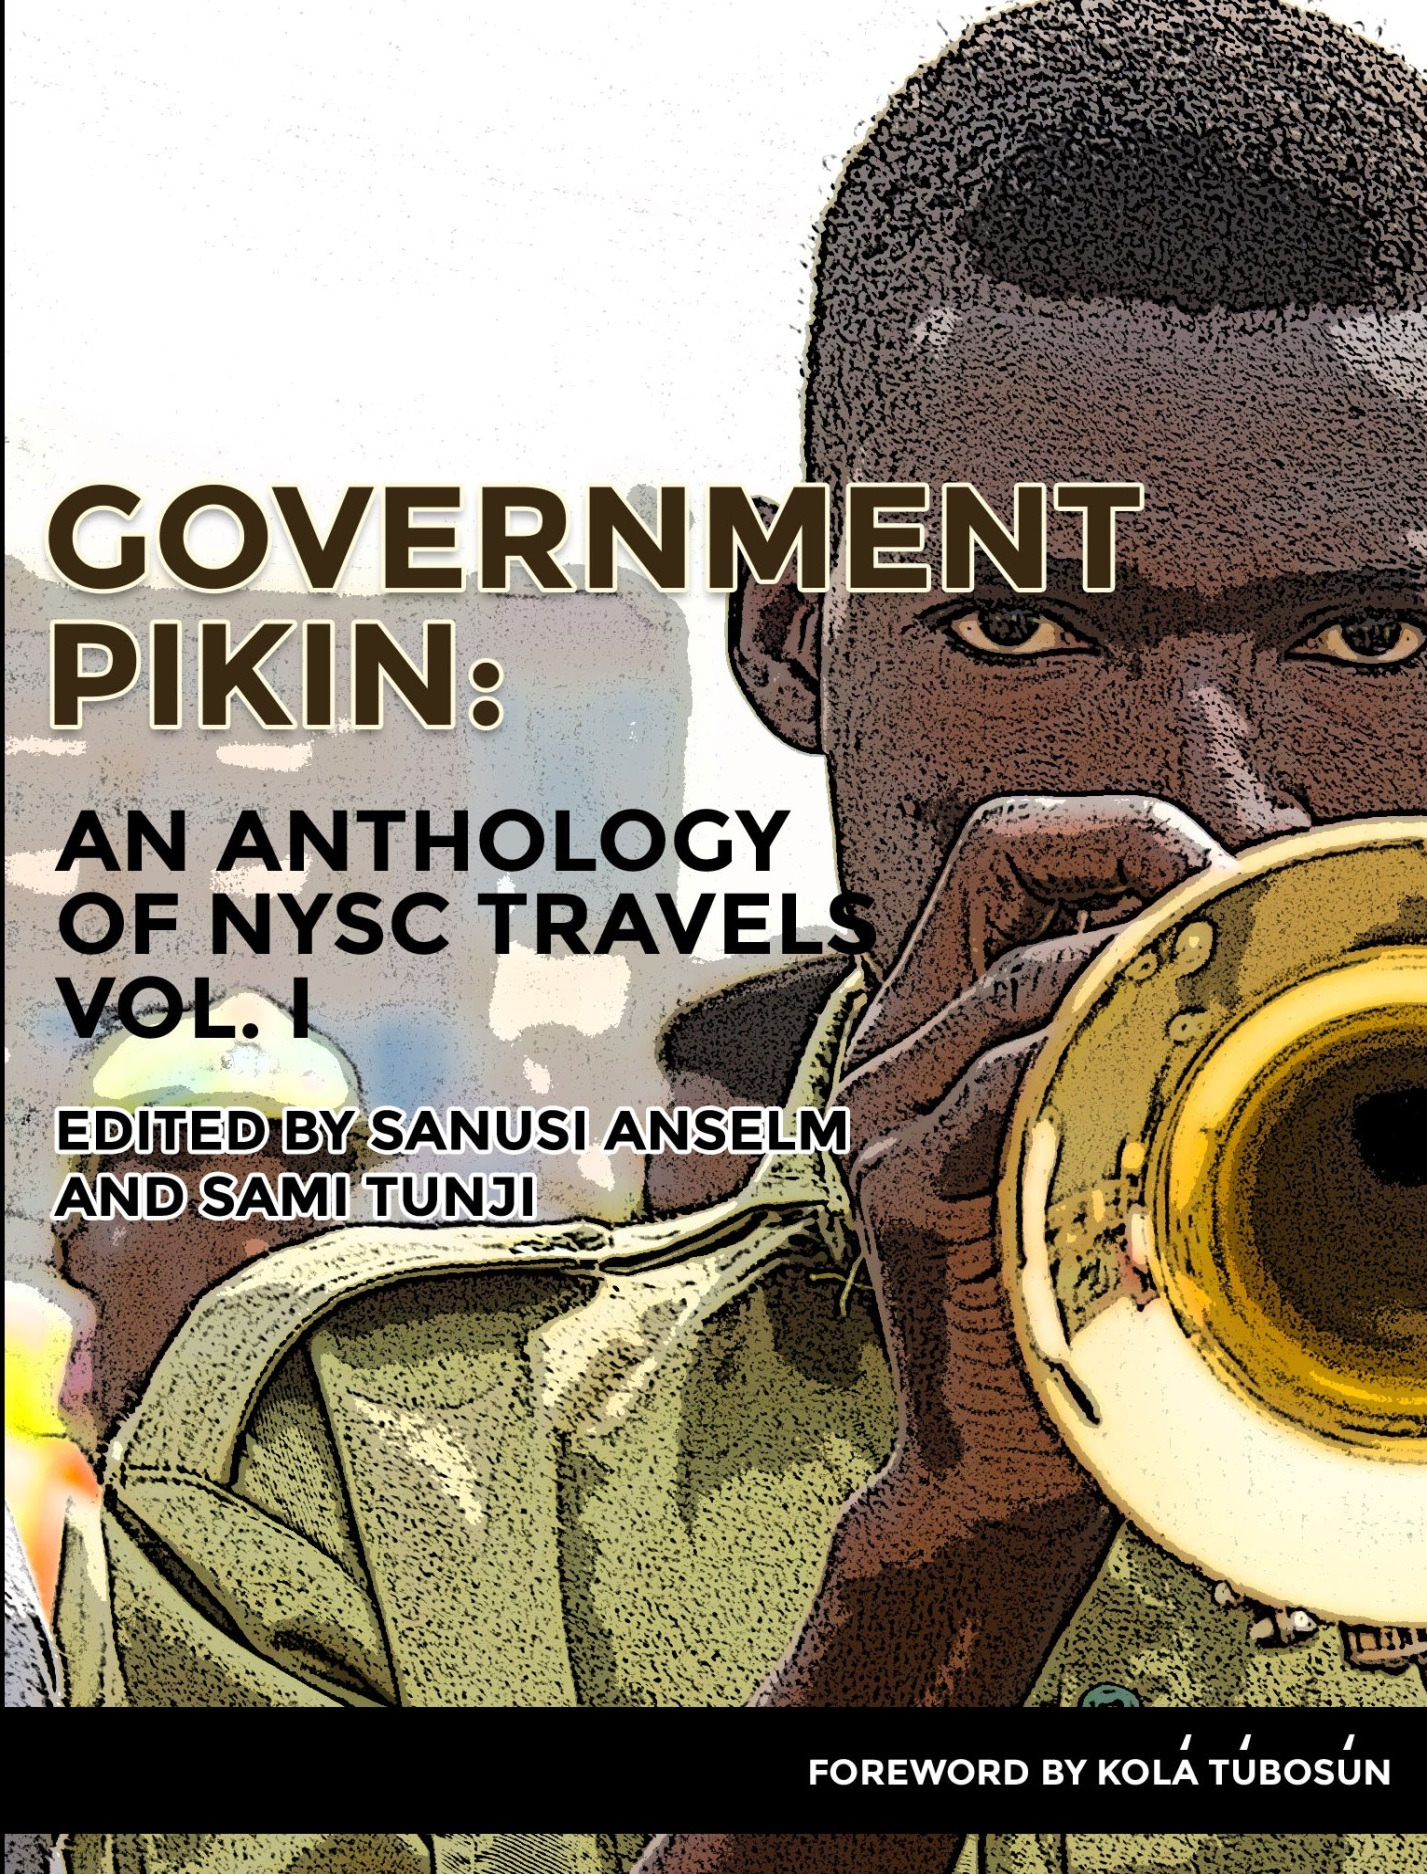 Government Pikin: An Anthology of NYSC Travels Vol I